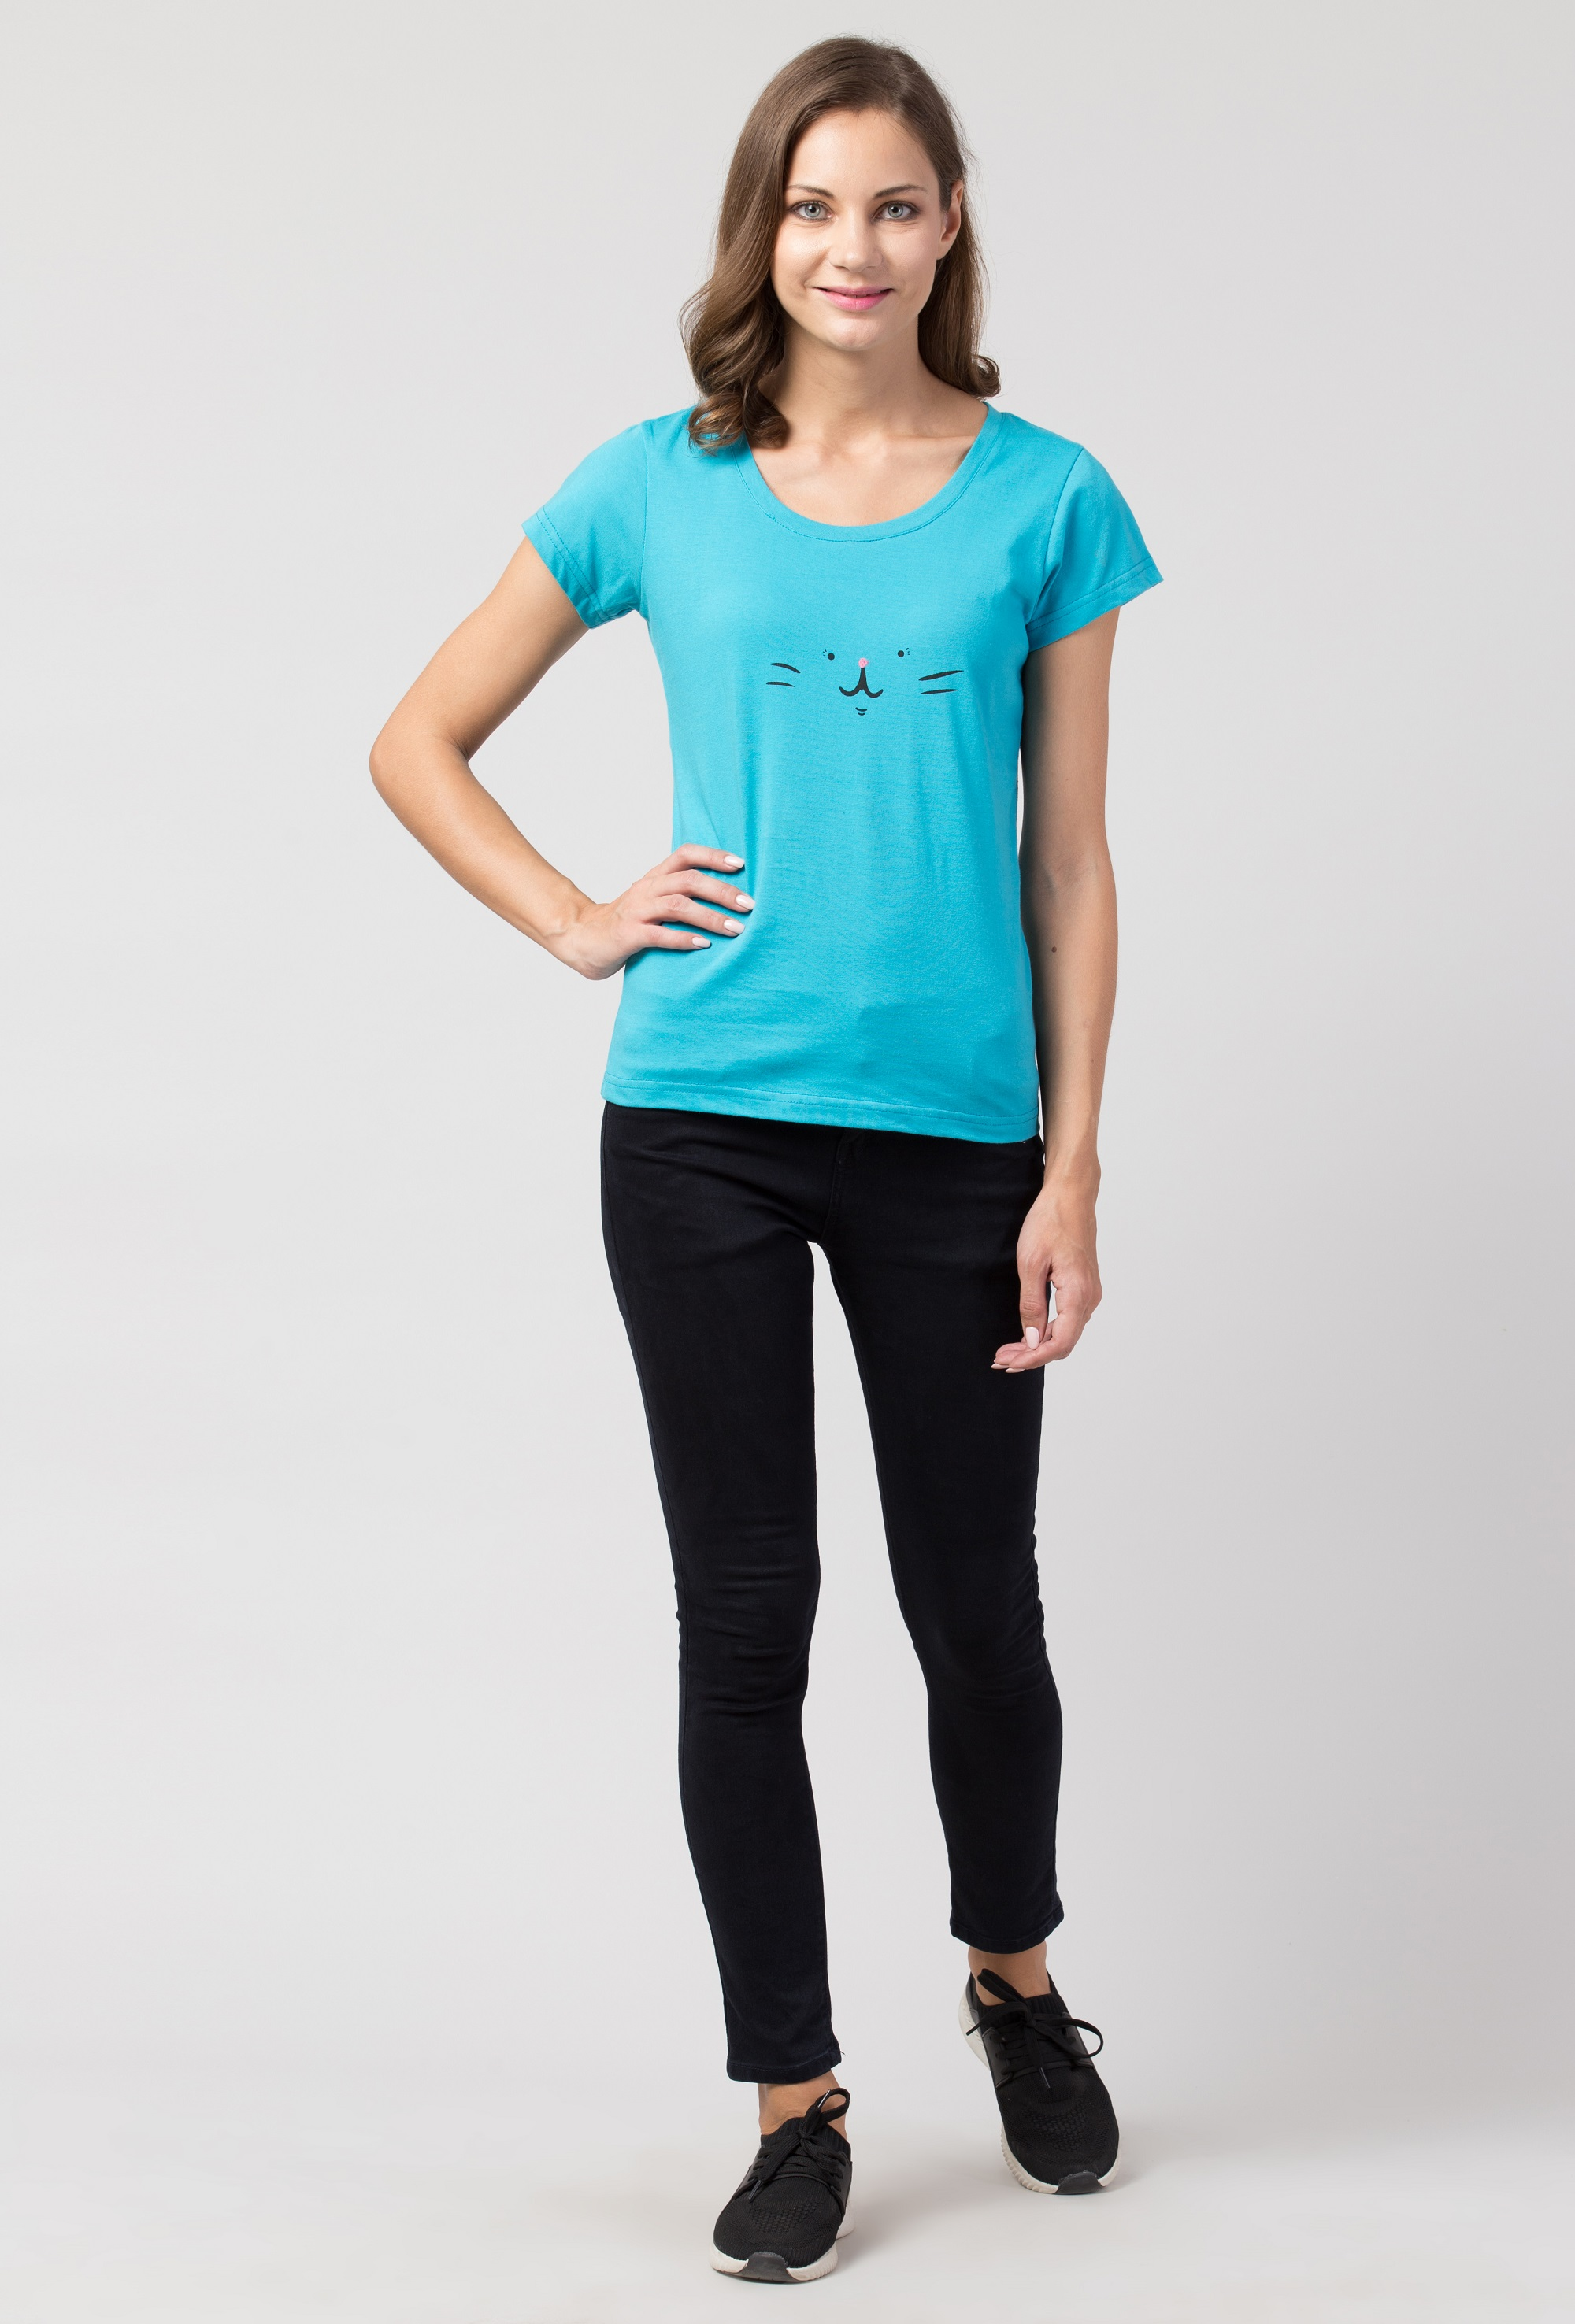 Folle Blue Tshirt With Cat Face